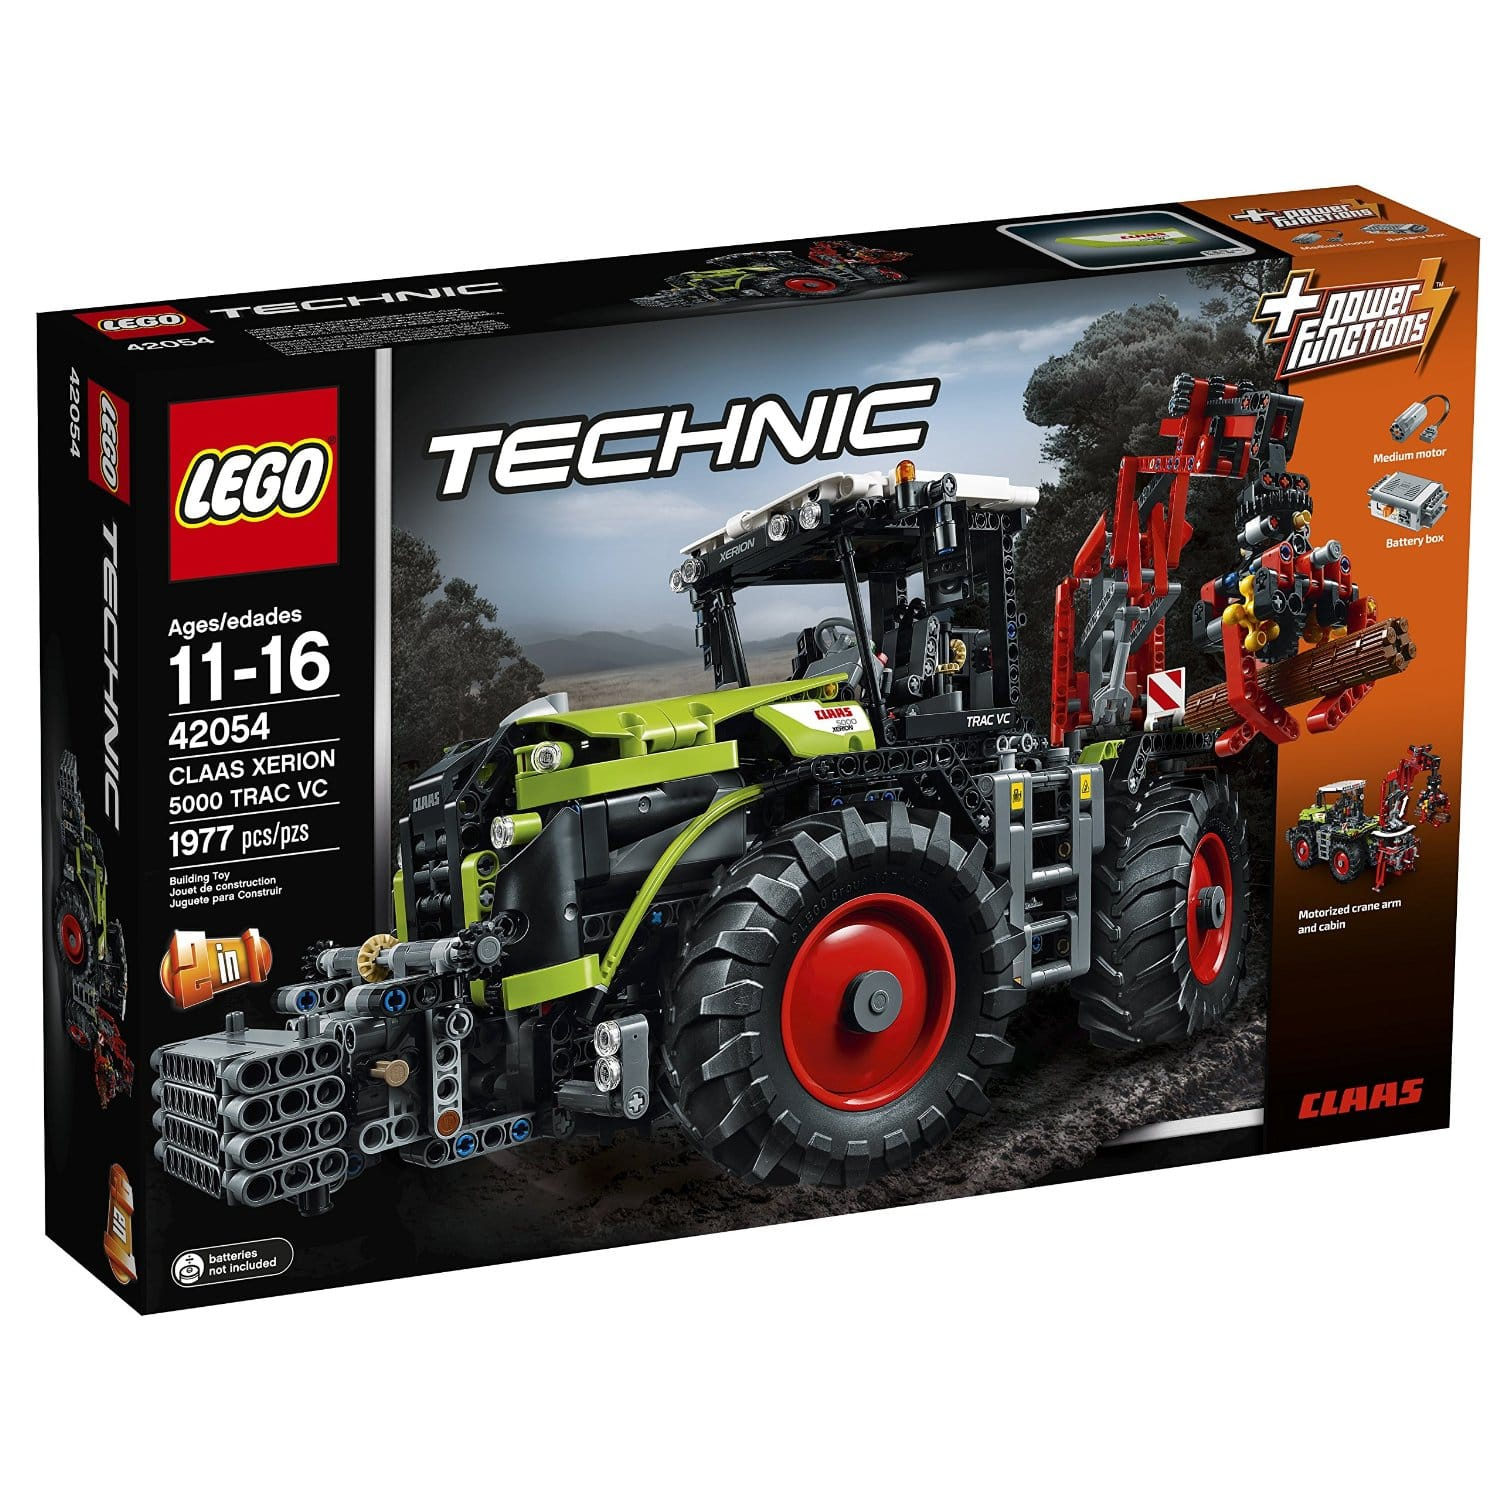 LEGO Technic Claas Xerion 5000 Trac VC Building Kit  $135 + Free Shipping